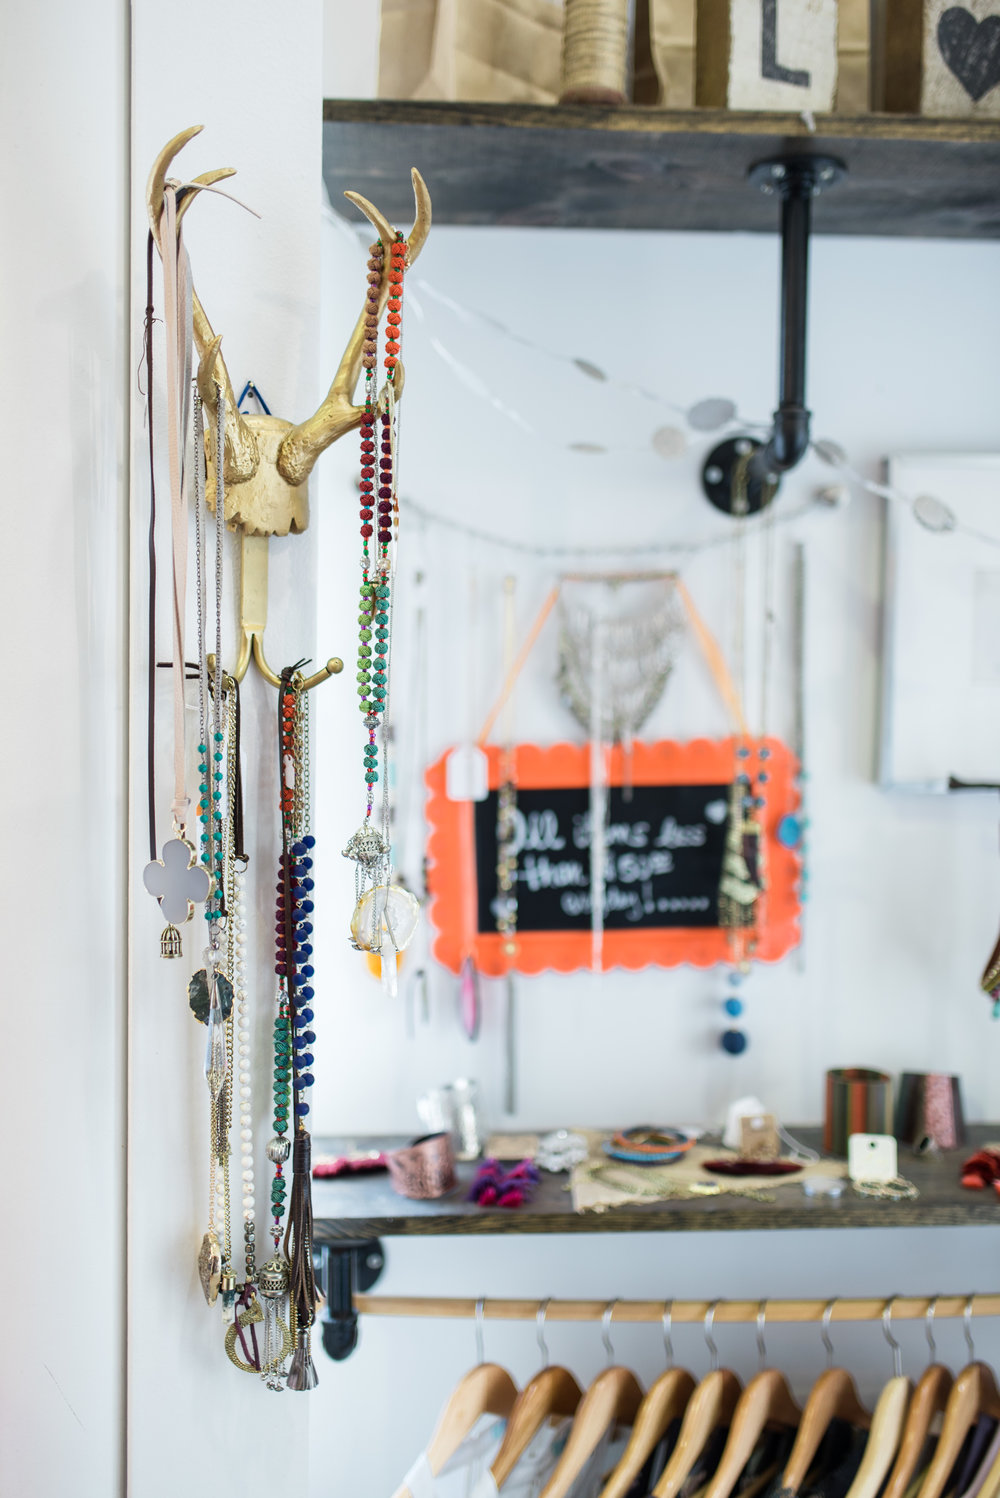 I Love Local Knoxville TN - The Clothes Studio-4047.jpg